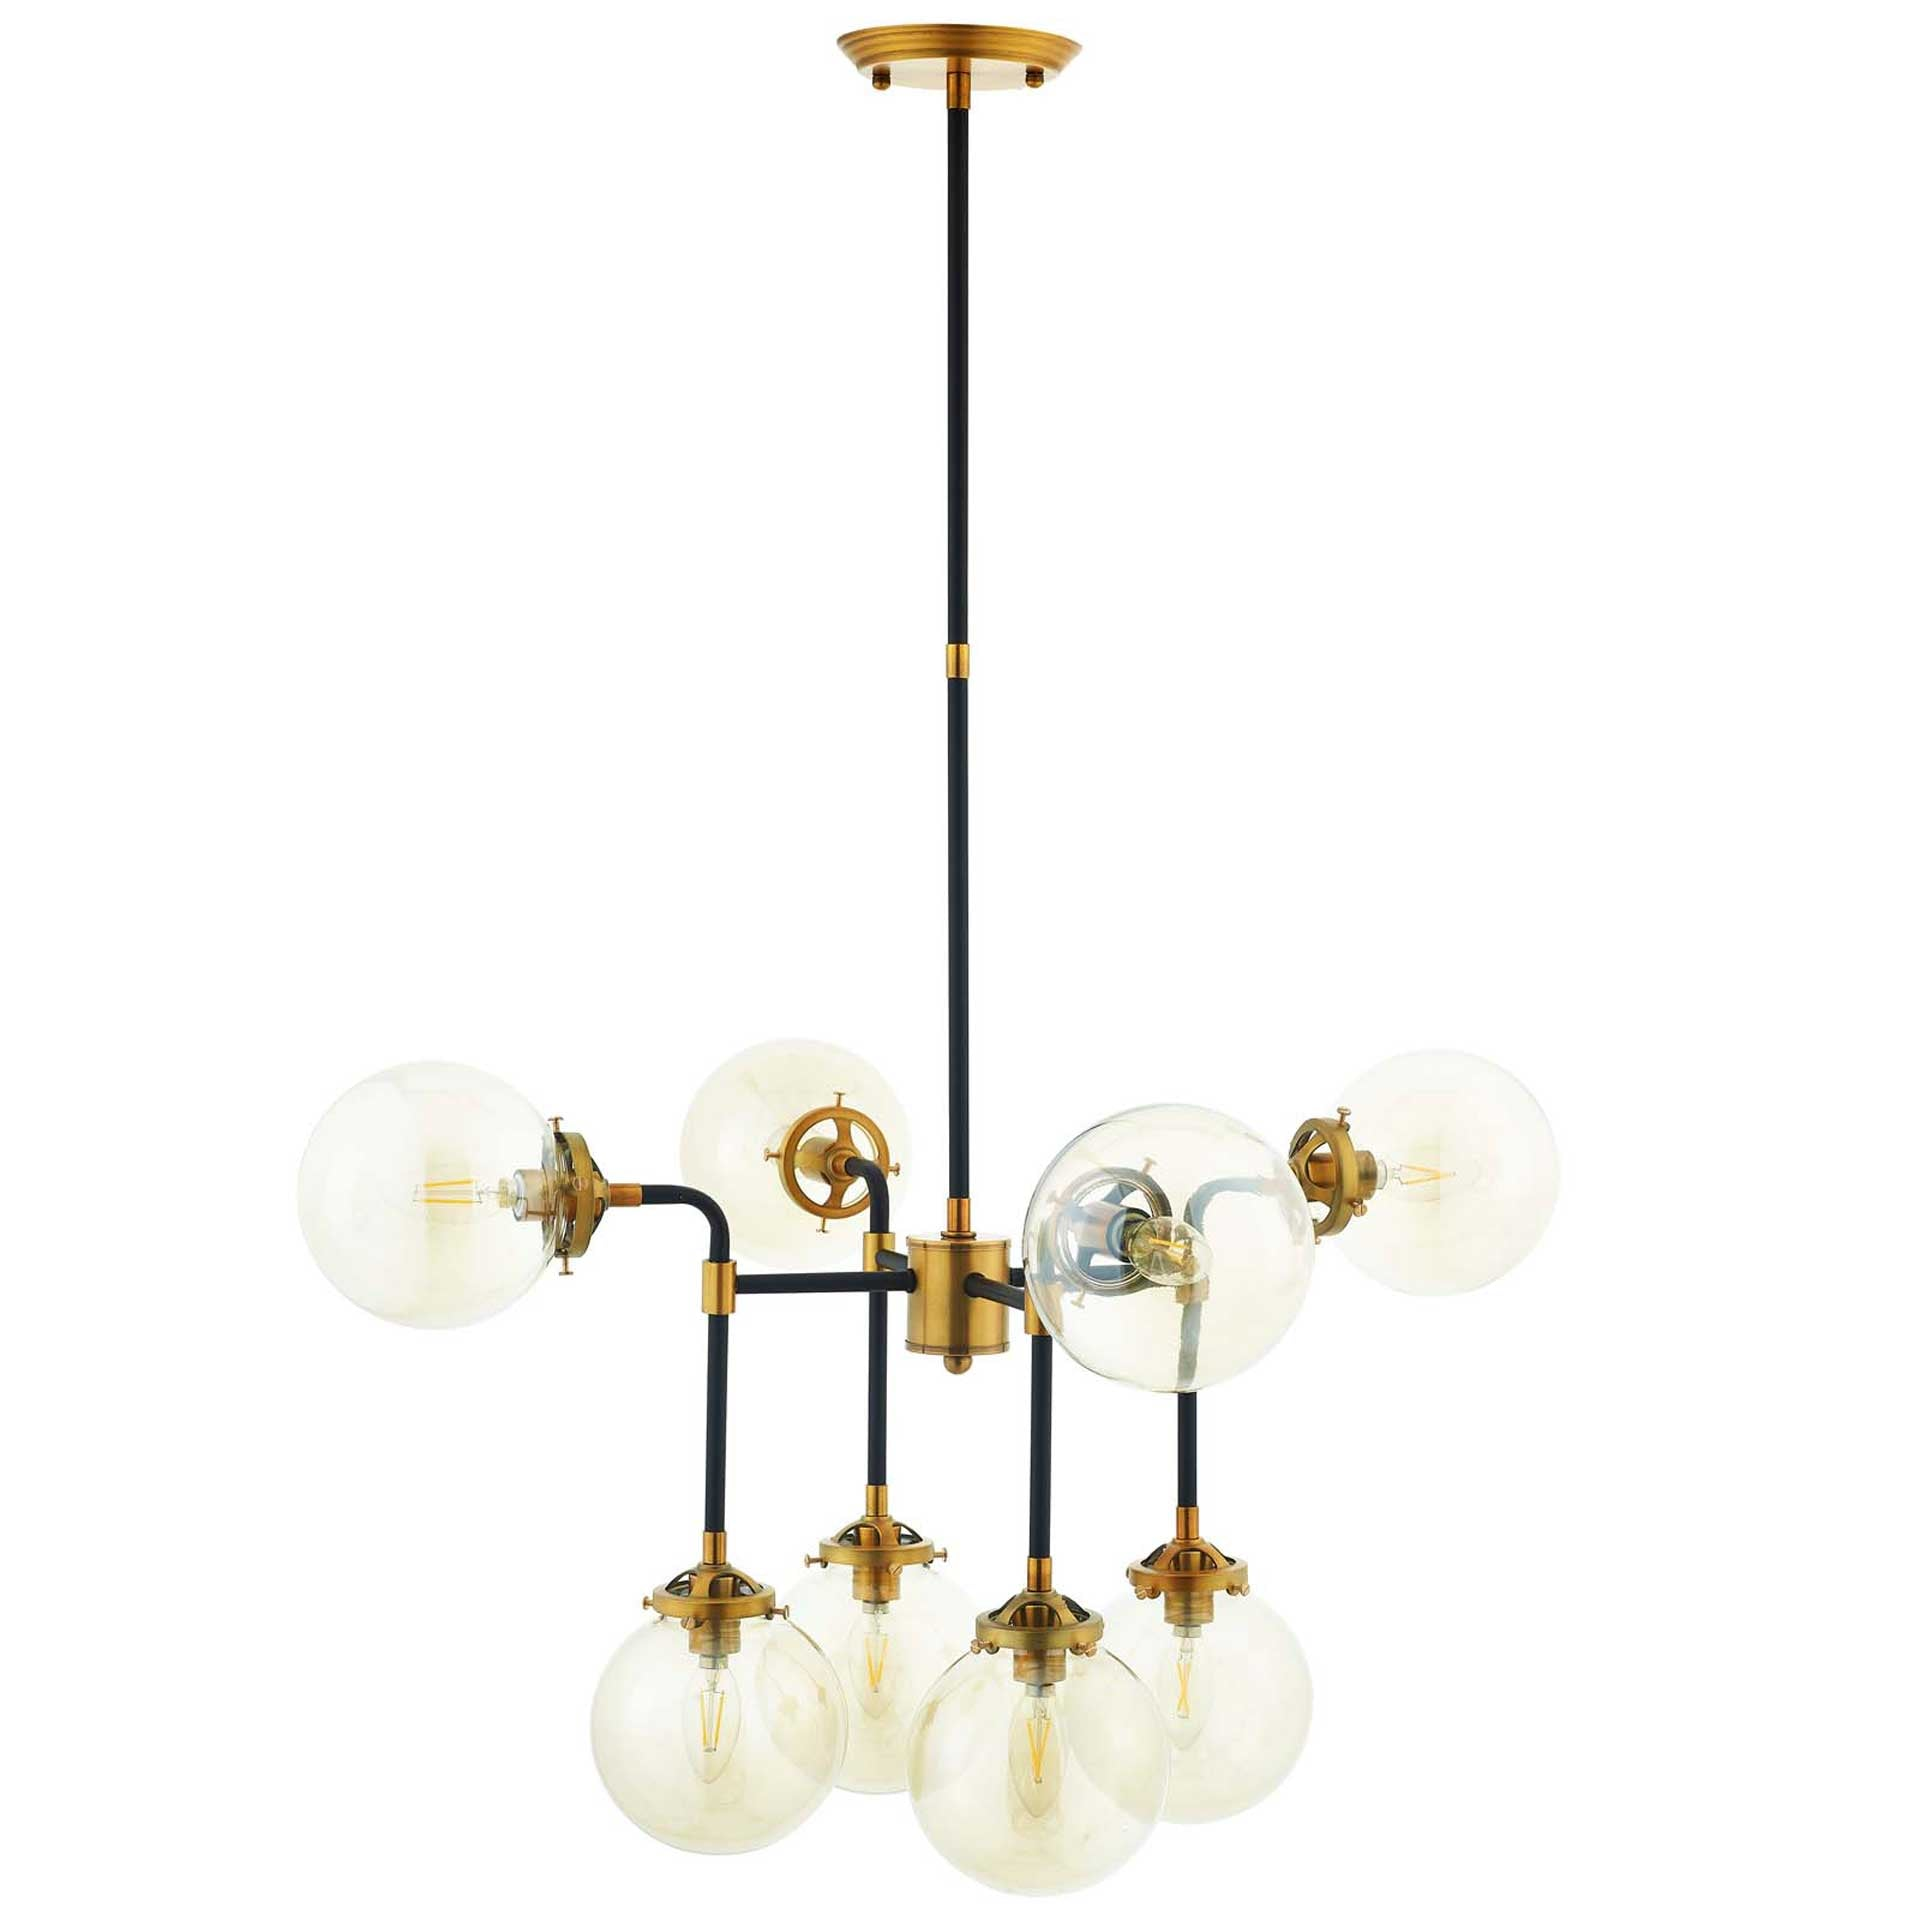 Ayden 12 Light Pendant Chandelier Black/Gold